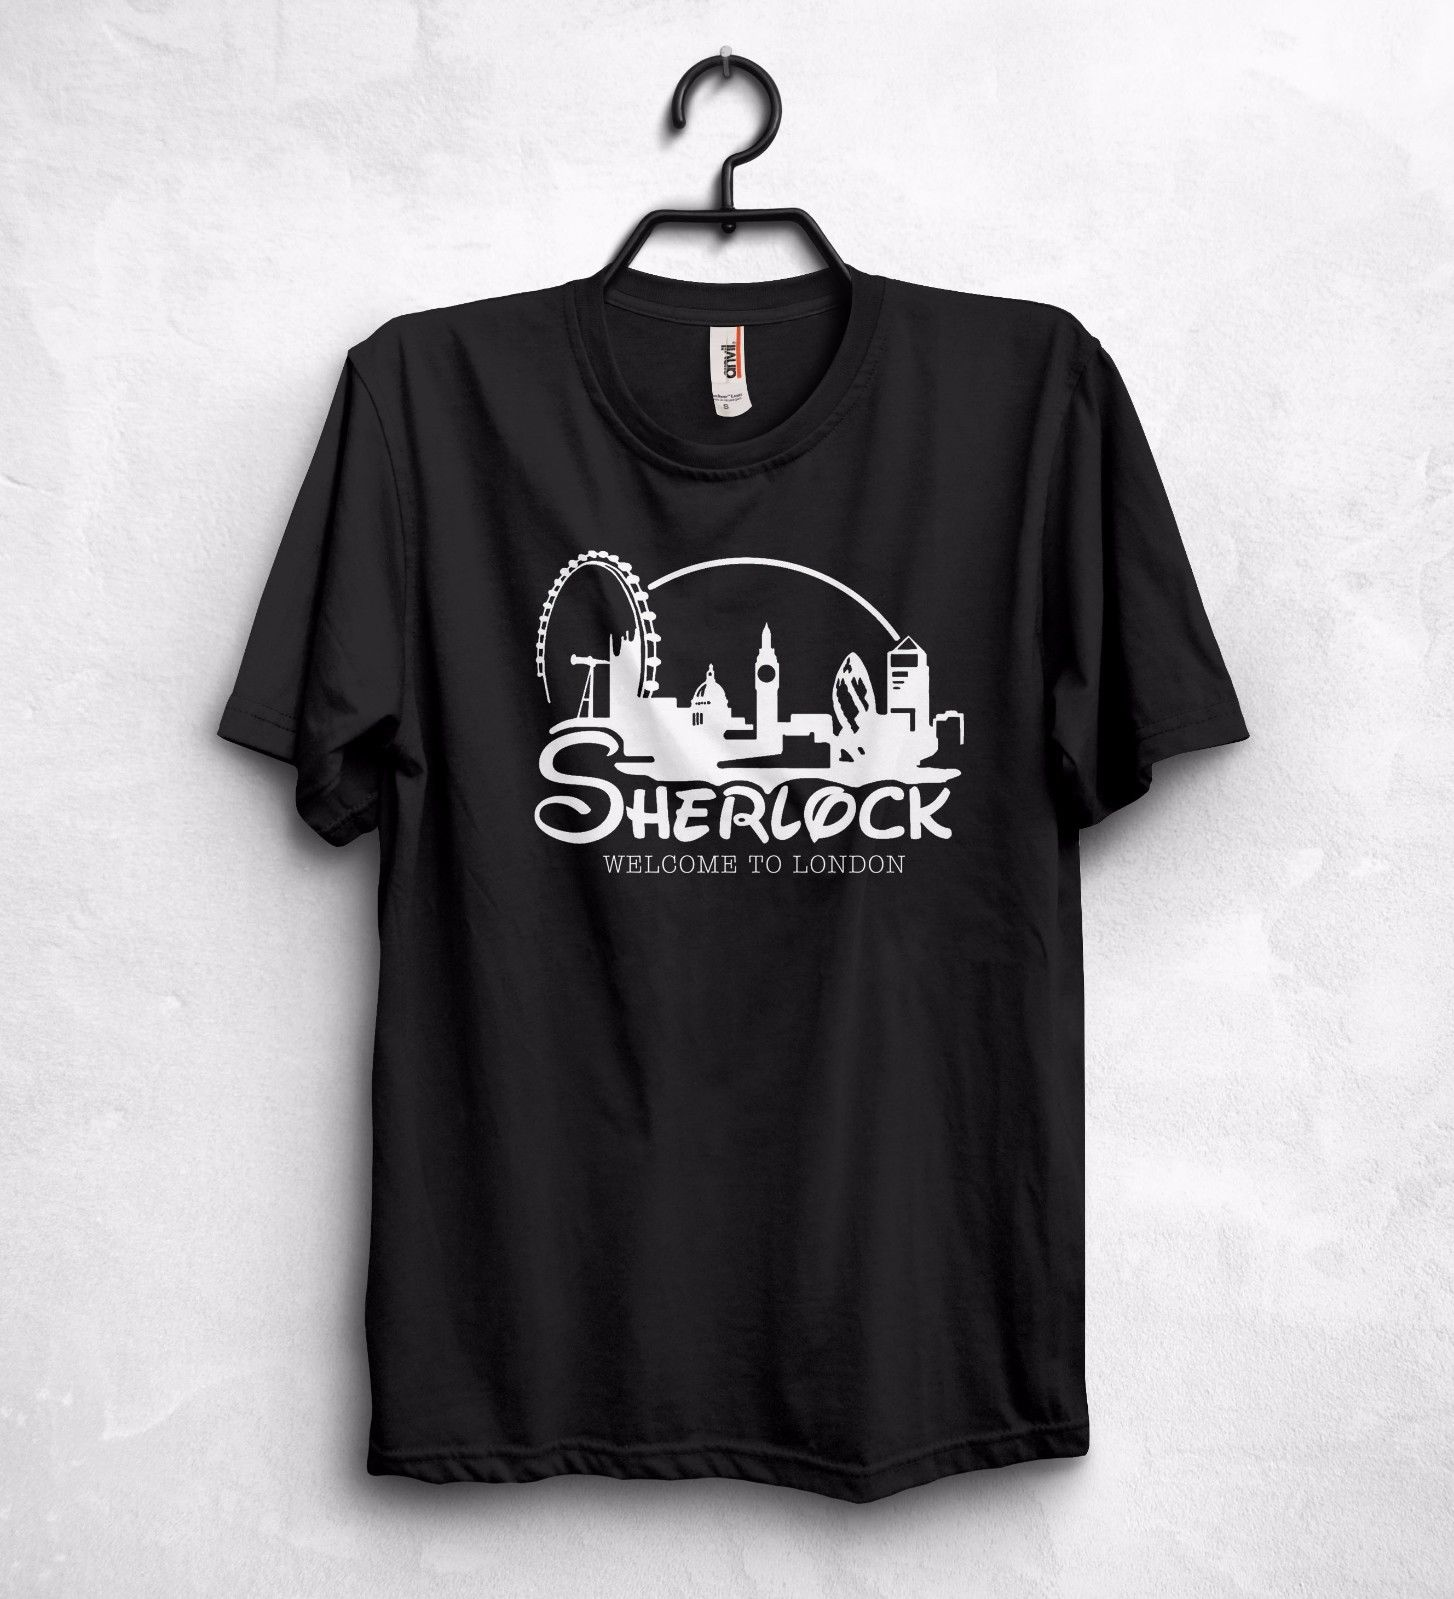 Sherlock Welcome To London T Shirt Consulting Detective I Am Sherlocked 100% Cotton Shor ...